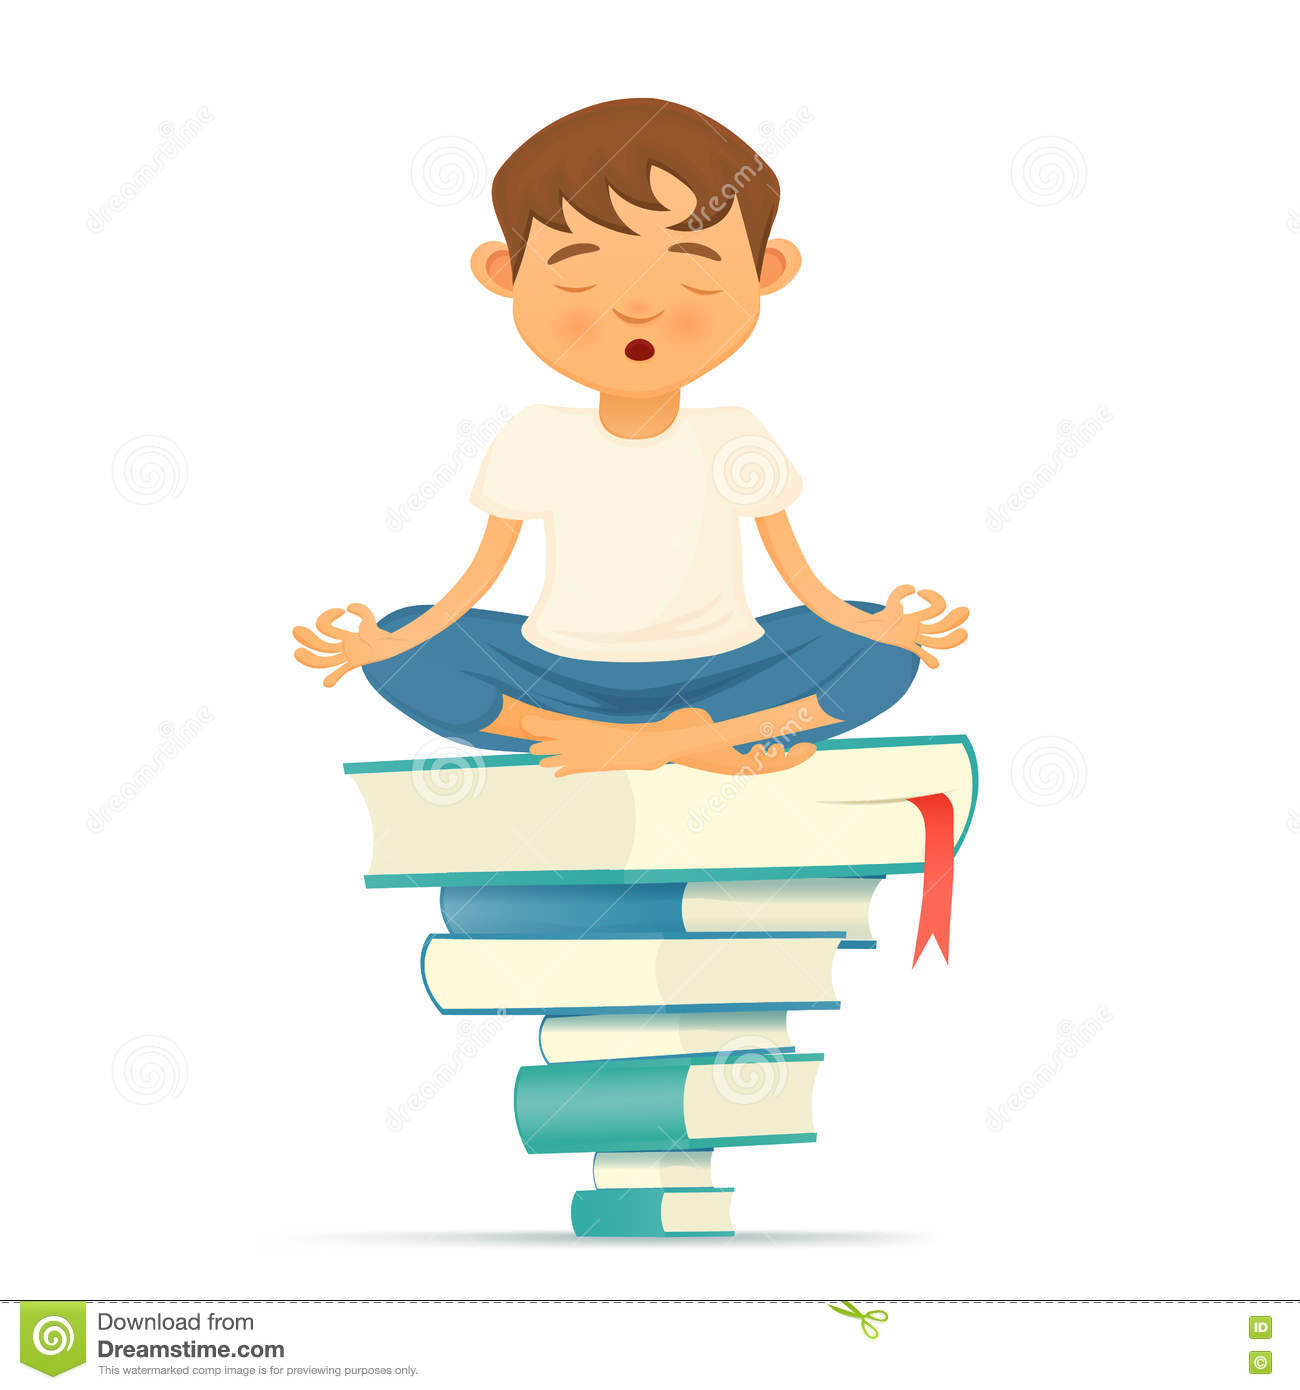 Illustration With Yong Yoga Meditation Boy Siting On Books Stock